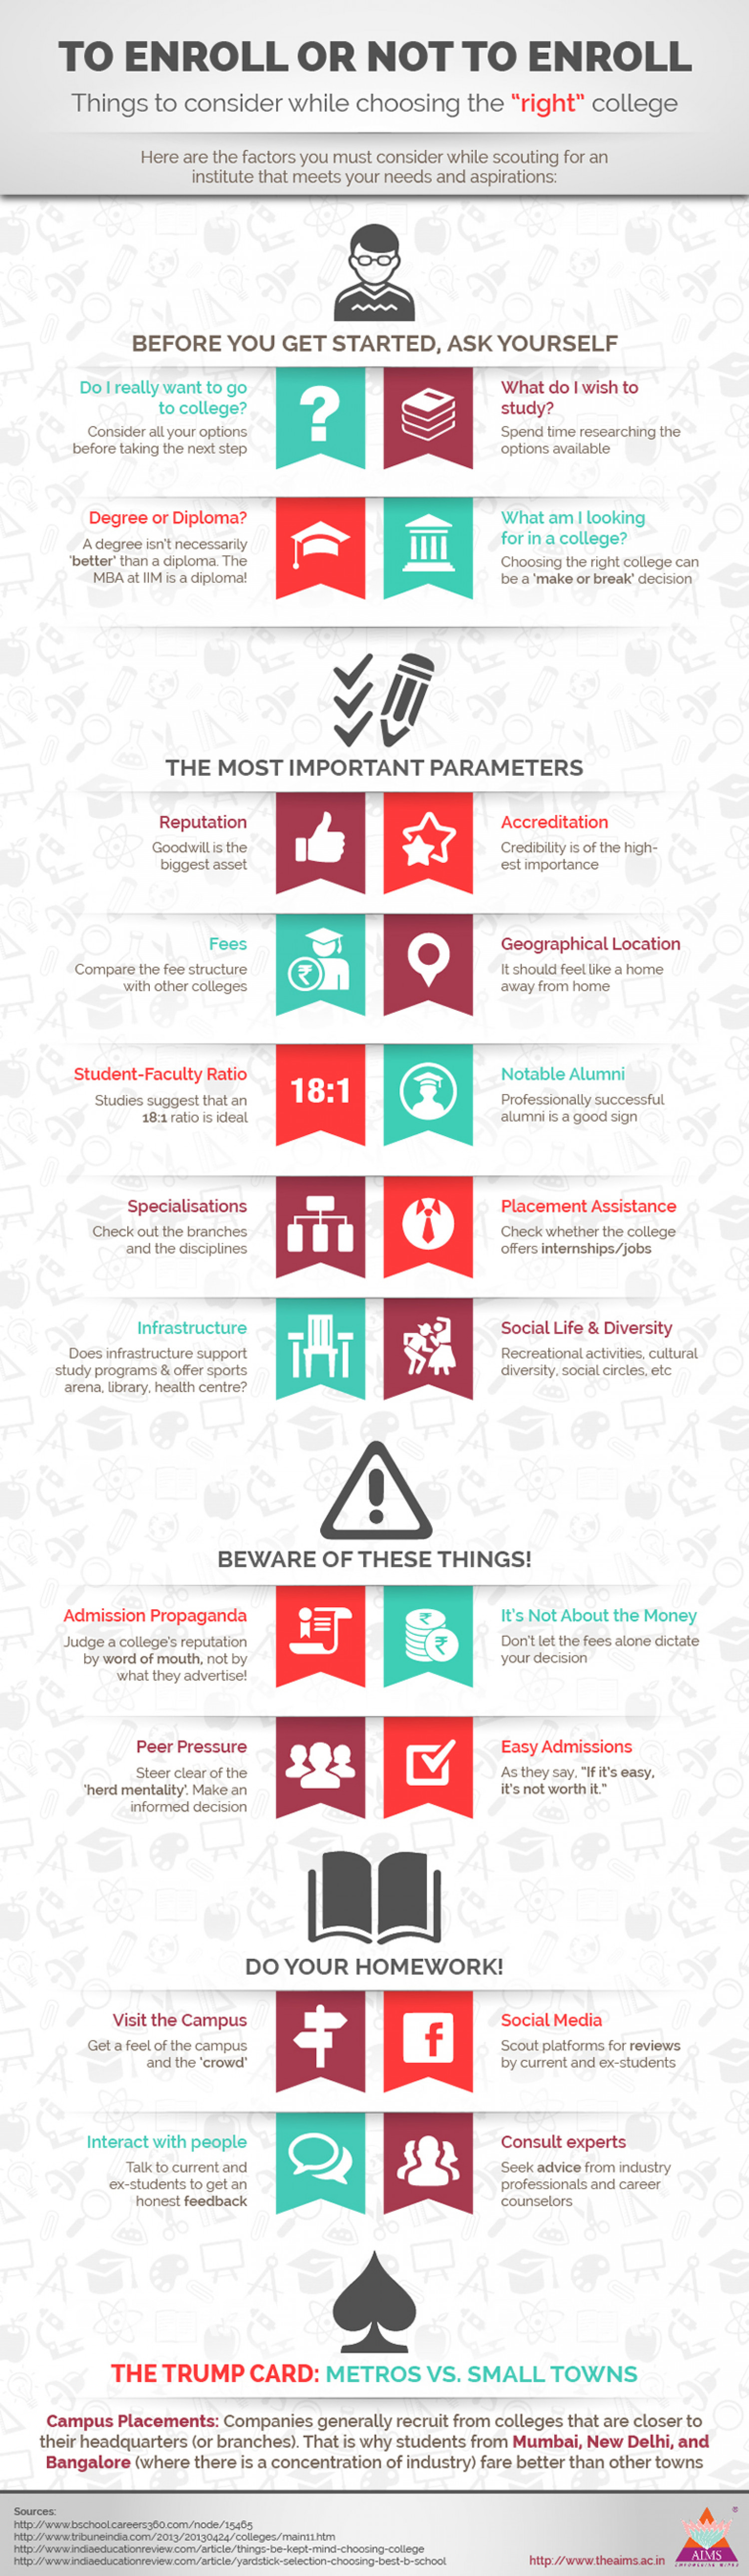 To enroll or not to enroll Infographic